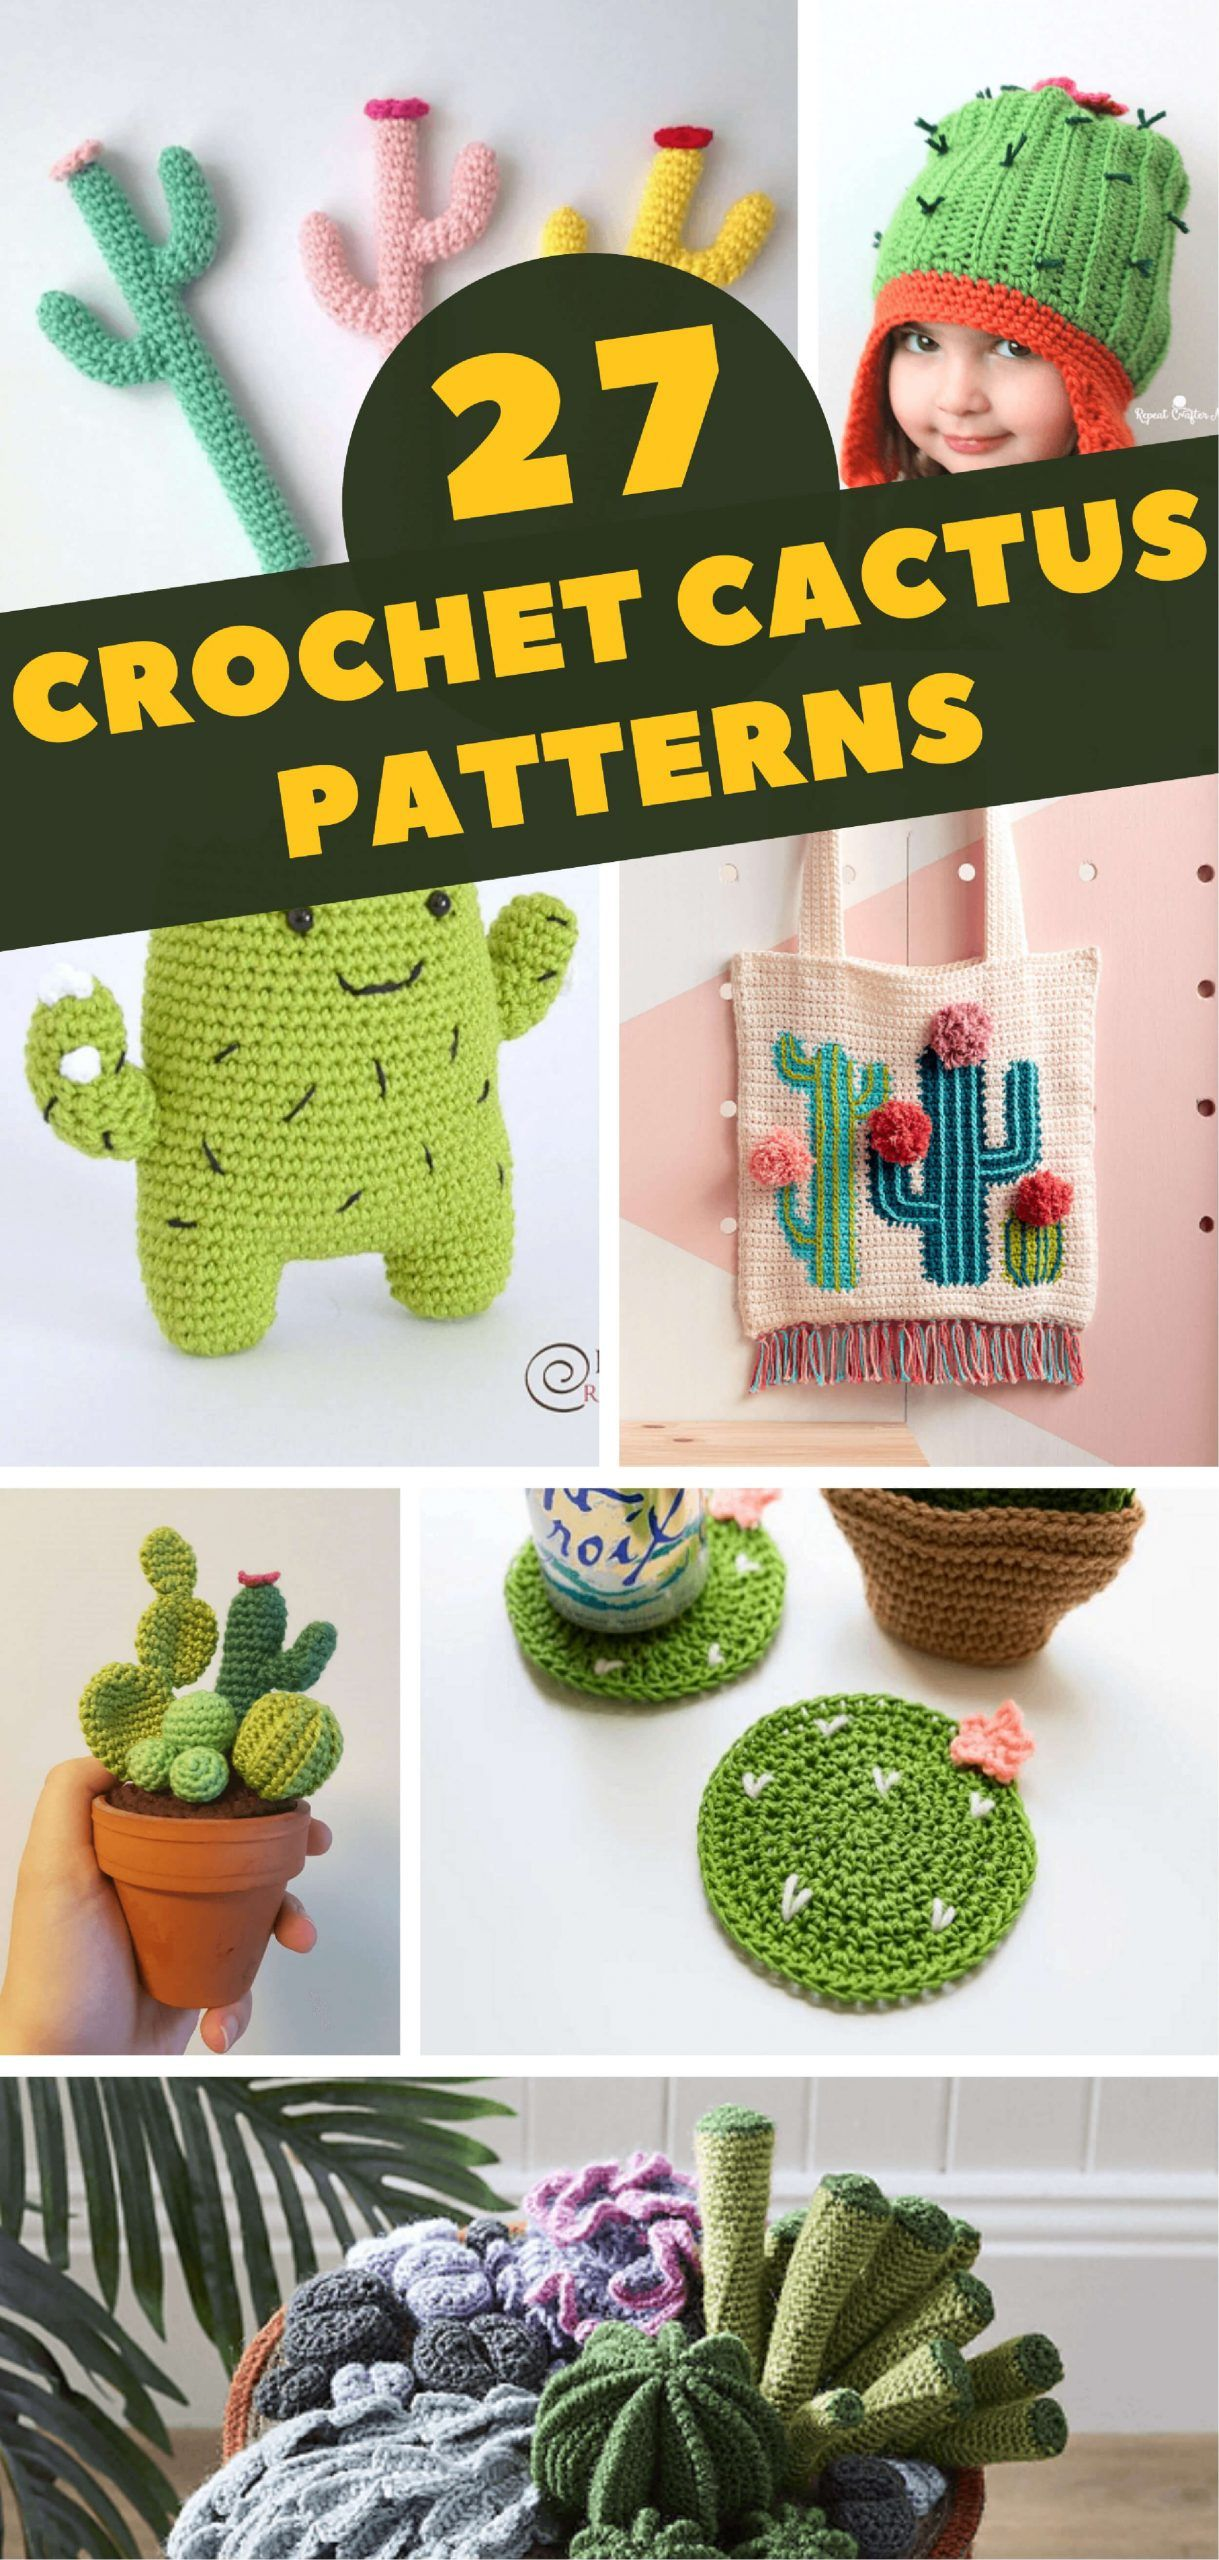 Photo of 27 Crochet Cactus Patterns – Crochet News